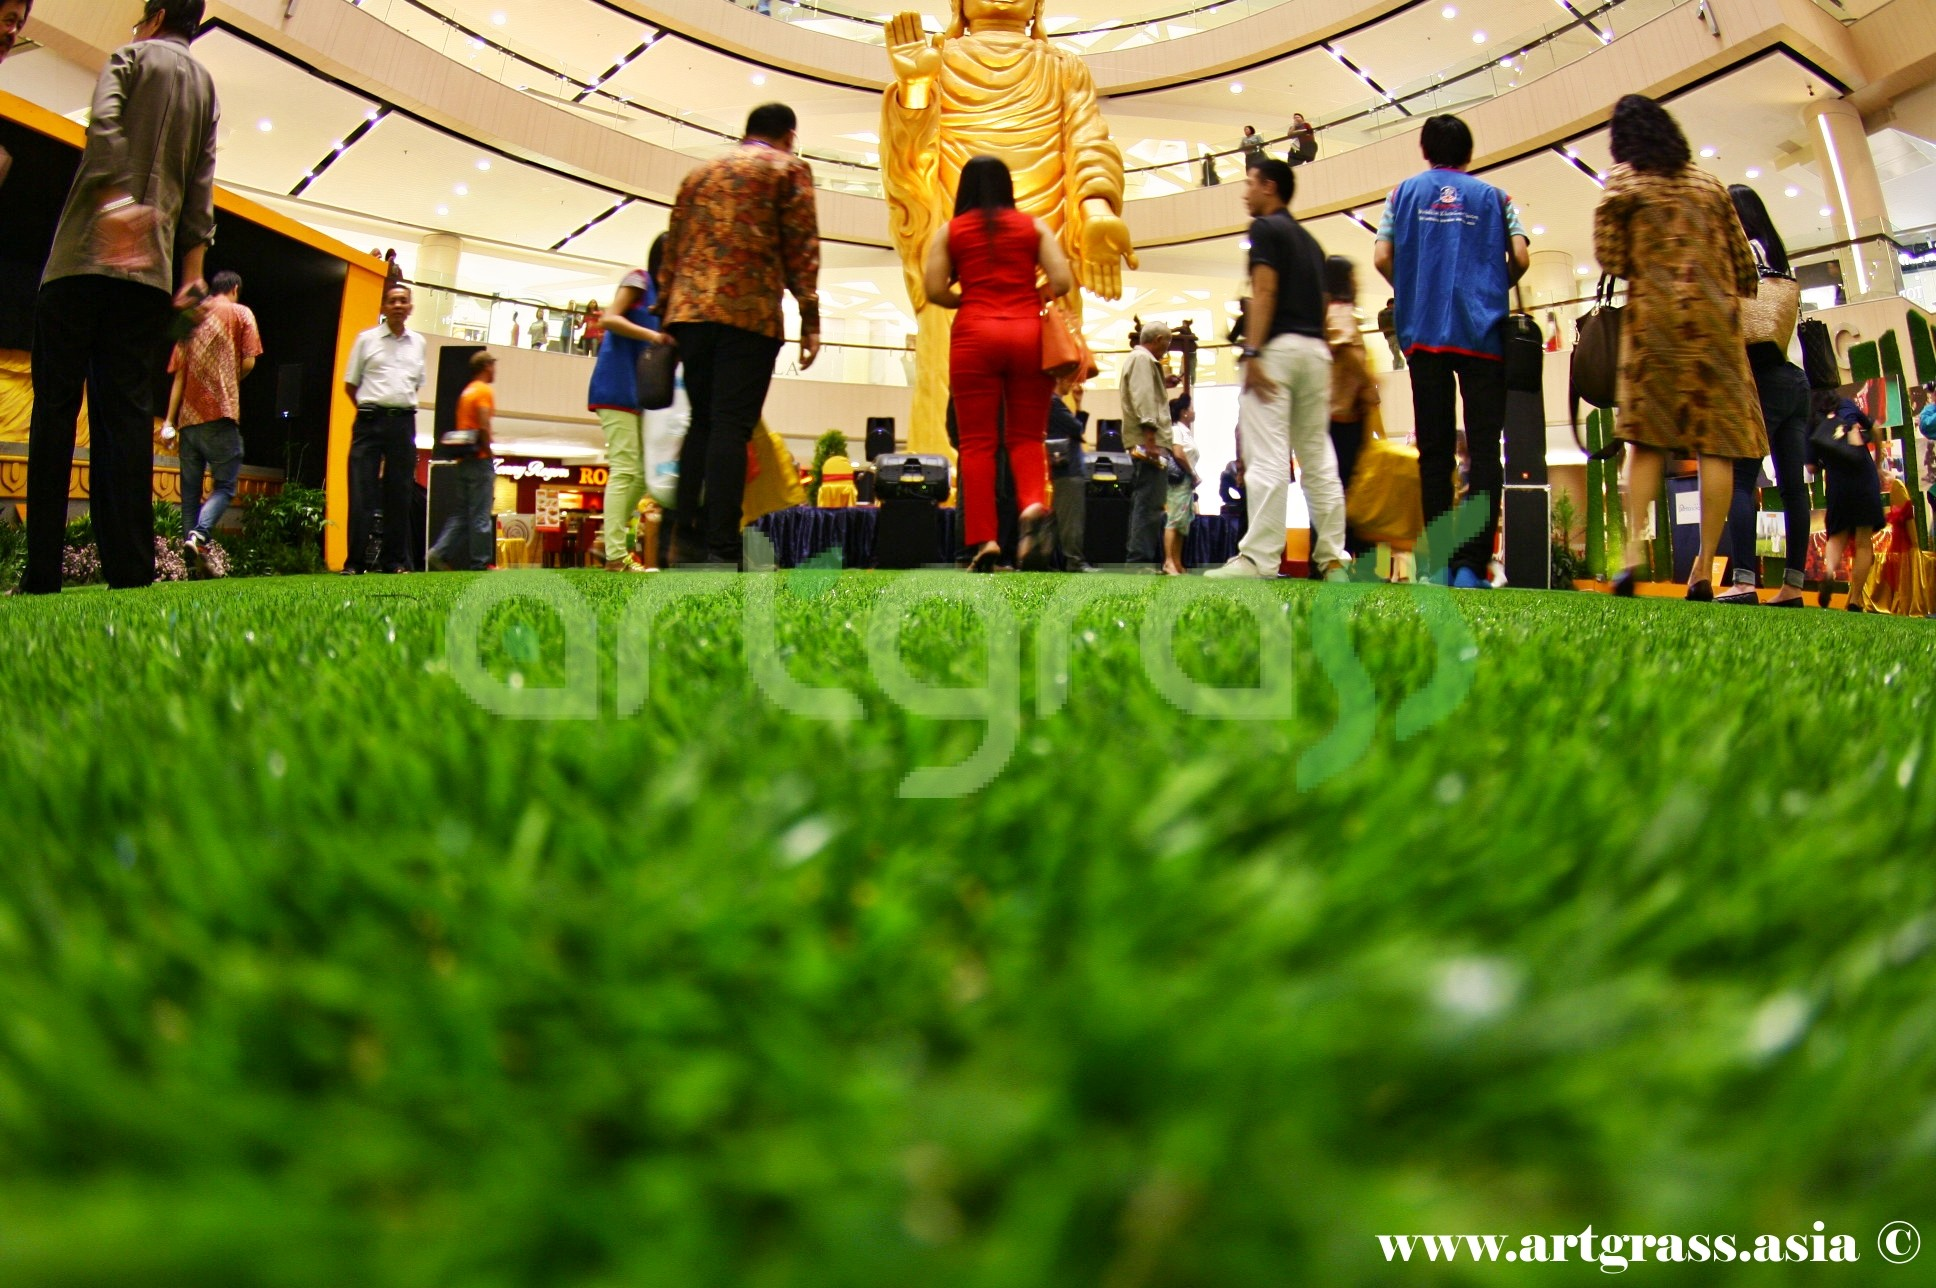 ArtGrass-At-Vesak-Festival-2015-Main-Atrium-Tunjungan-Plaza-28Mei-2015-Bottom-Center-View